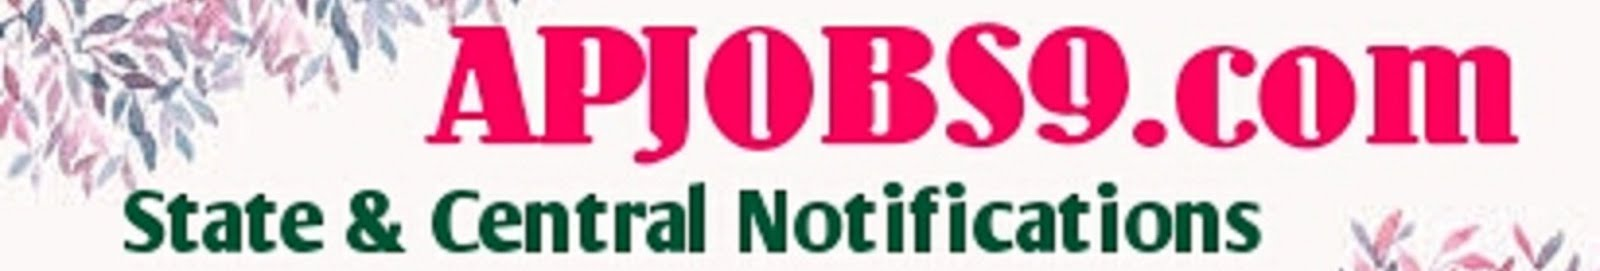 Latest JOB Notifications from RRB Bank Central Govt Postal State Govt Private Jobs